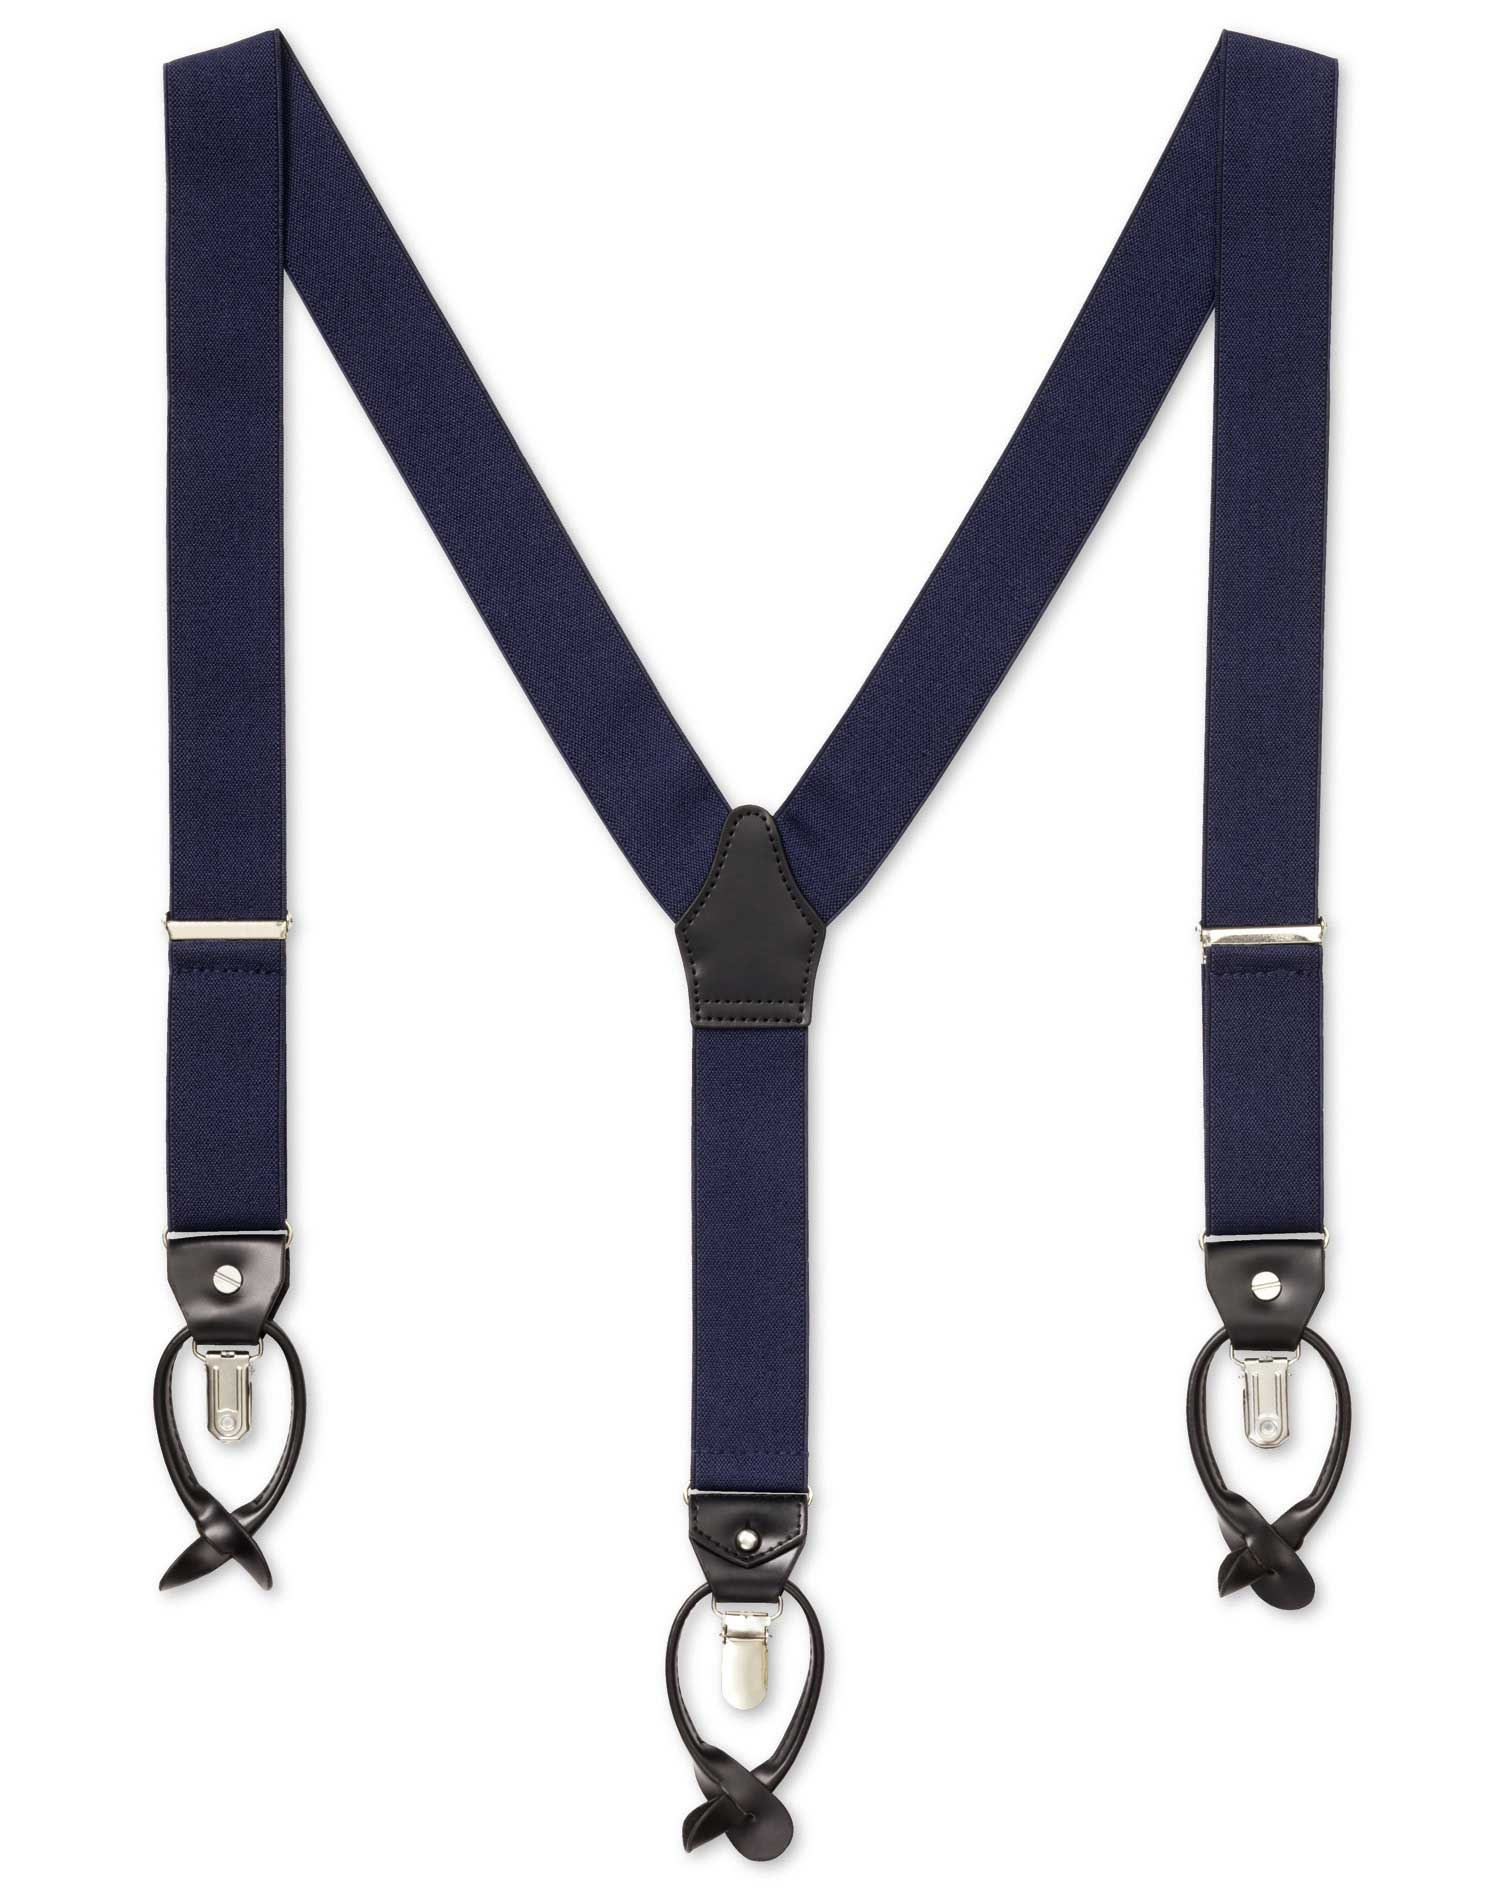 Men's Vintage Style Suspenders Charles Tyrwhitt Navy combination braces £29.95 AT vintagedancer.com